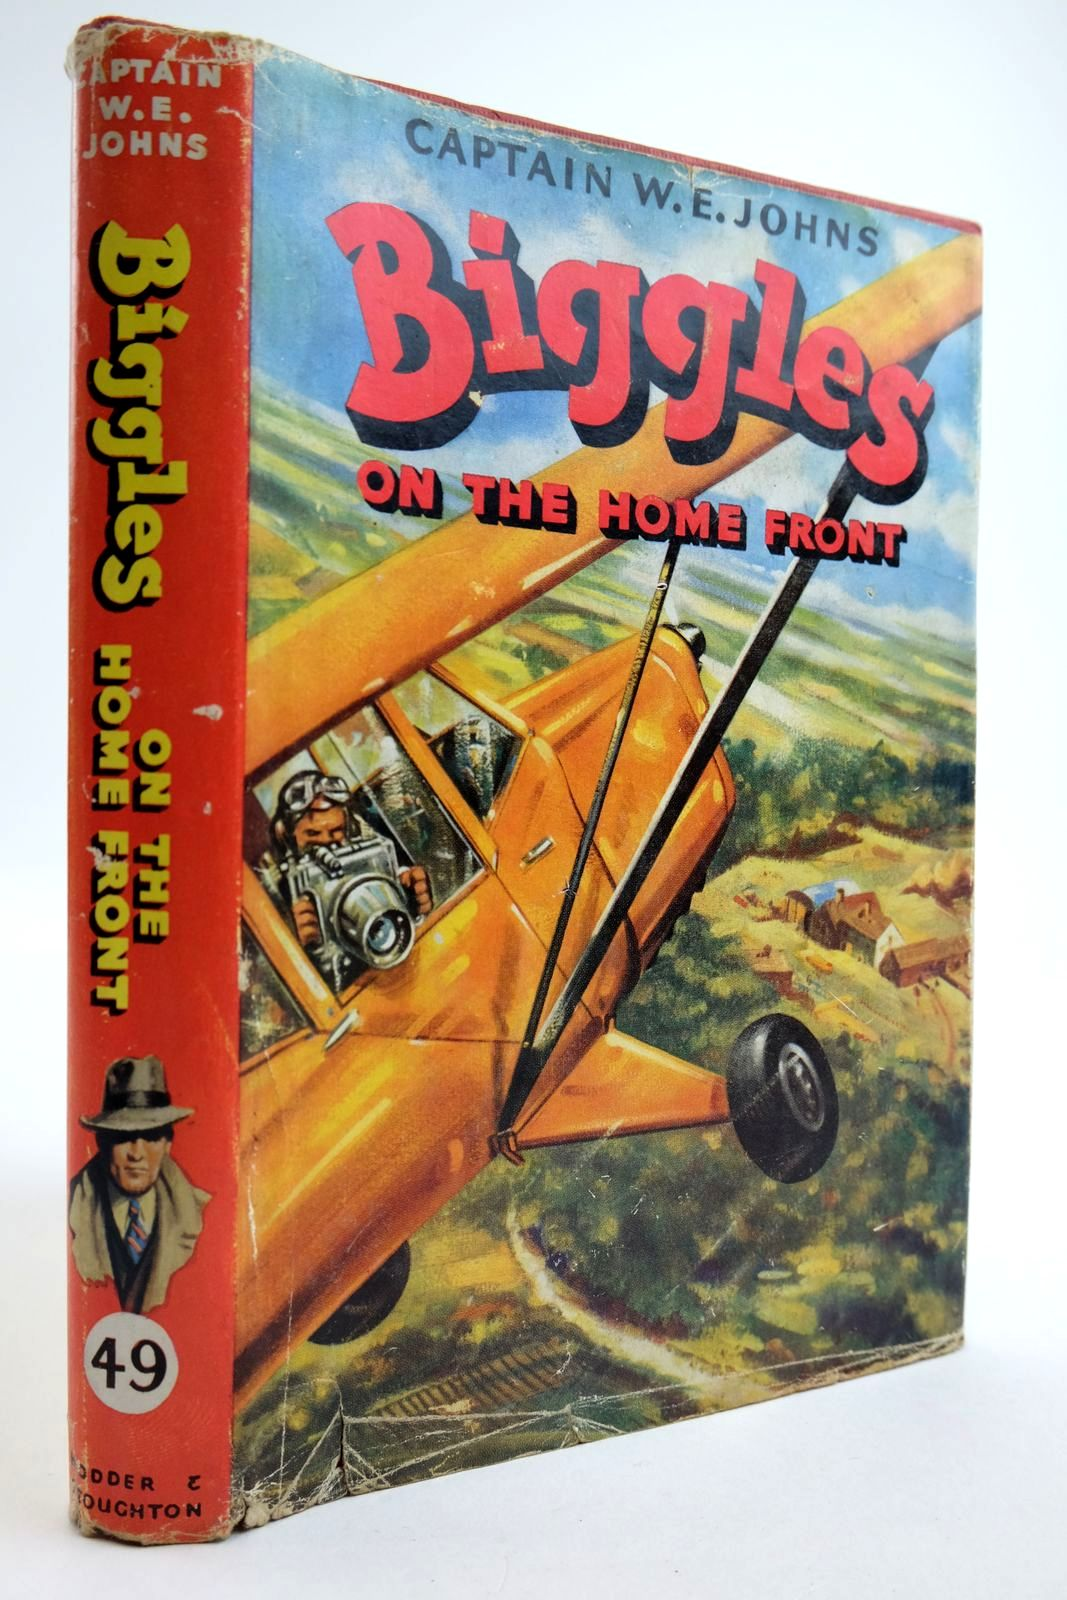 Photo of BIGGLES ON THE HOME FRONT written by Johns, W.E. illustrated by Stead,  published by Hodder & Stoughton (STOCK CODE: 2134122)  for sale by Stella & Rose's Books